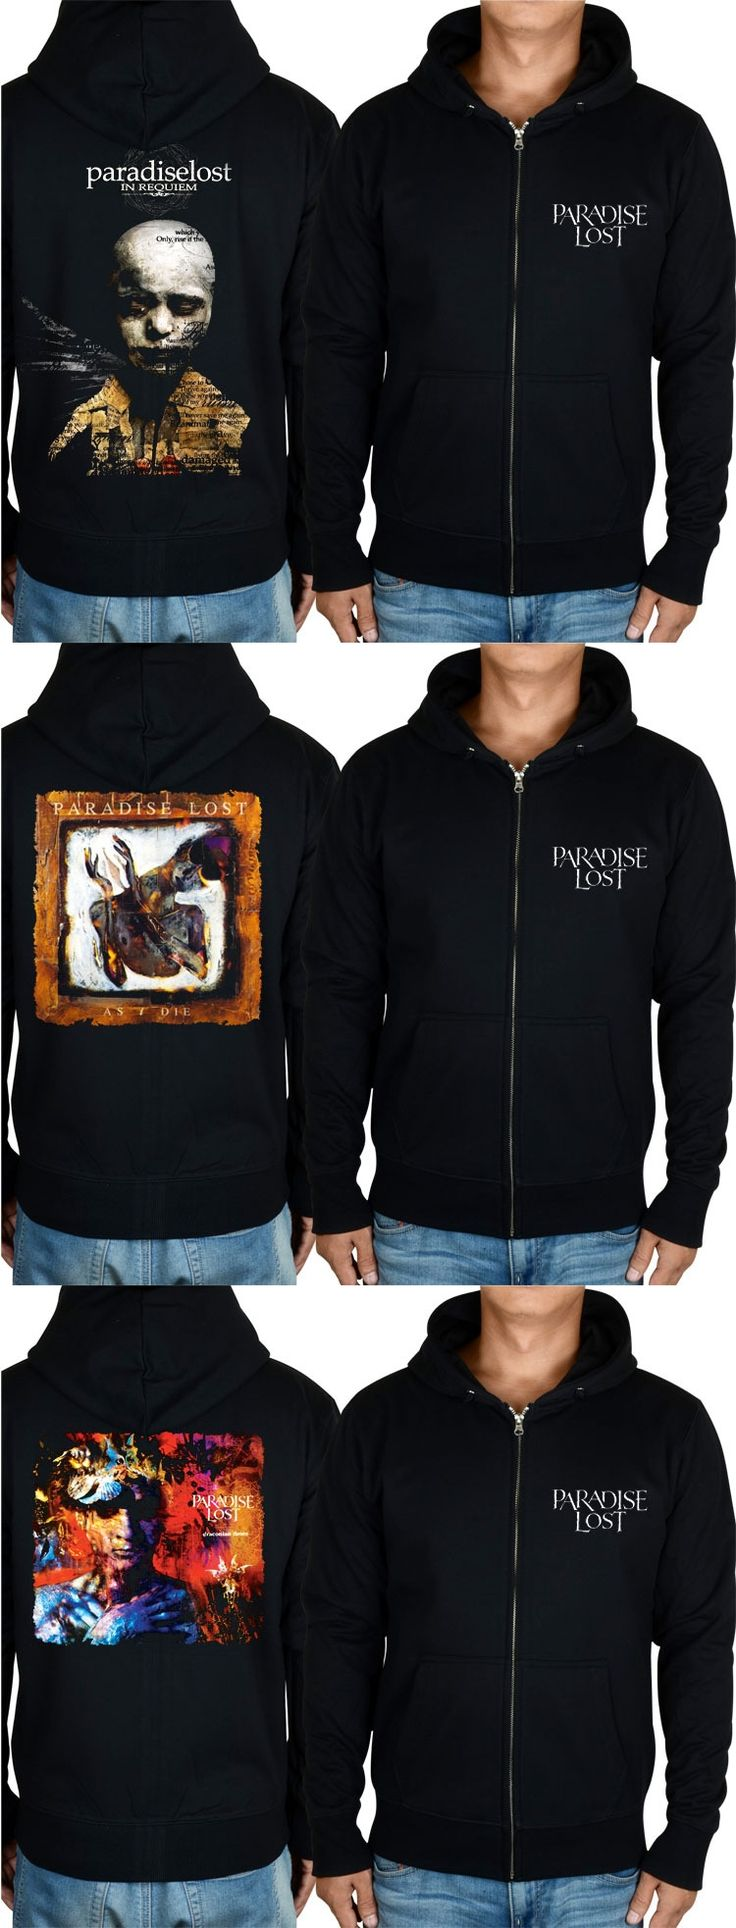 Paradise Lost band  Draconian Times gothic metal doom metal  hoodie